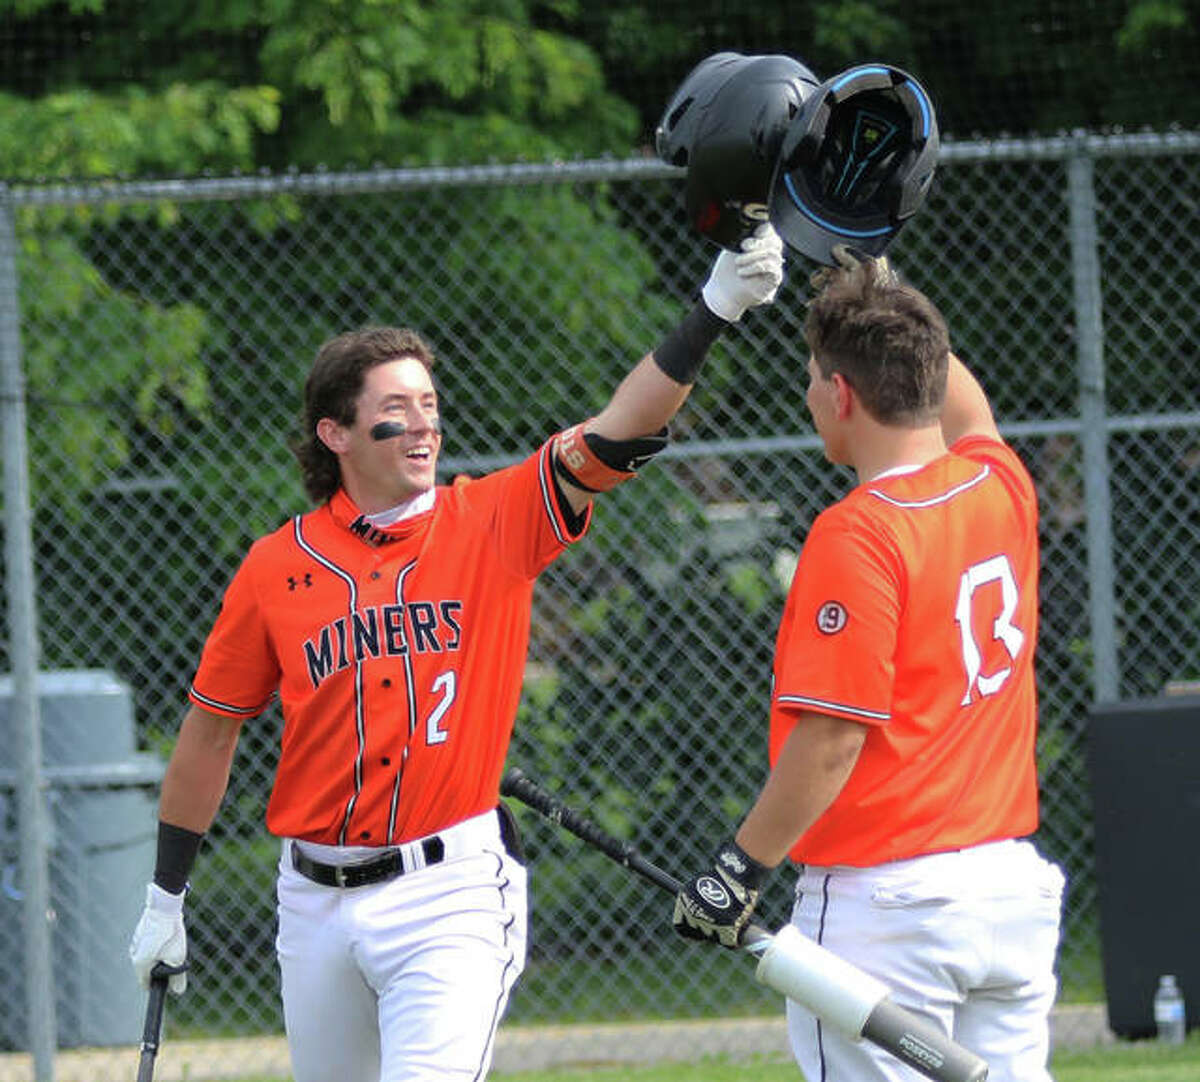 Gillespie's Cameron Hailstone (left) gets a congratulatory helmet tap from teammate Gavin Griffith after Hailstone's first of two home runs in the Miners' win over Southwestern on Monday in Gillespie.